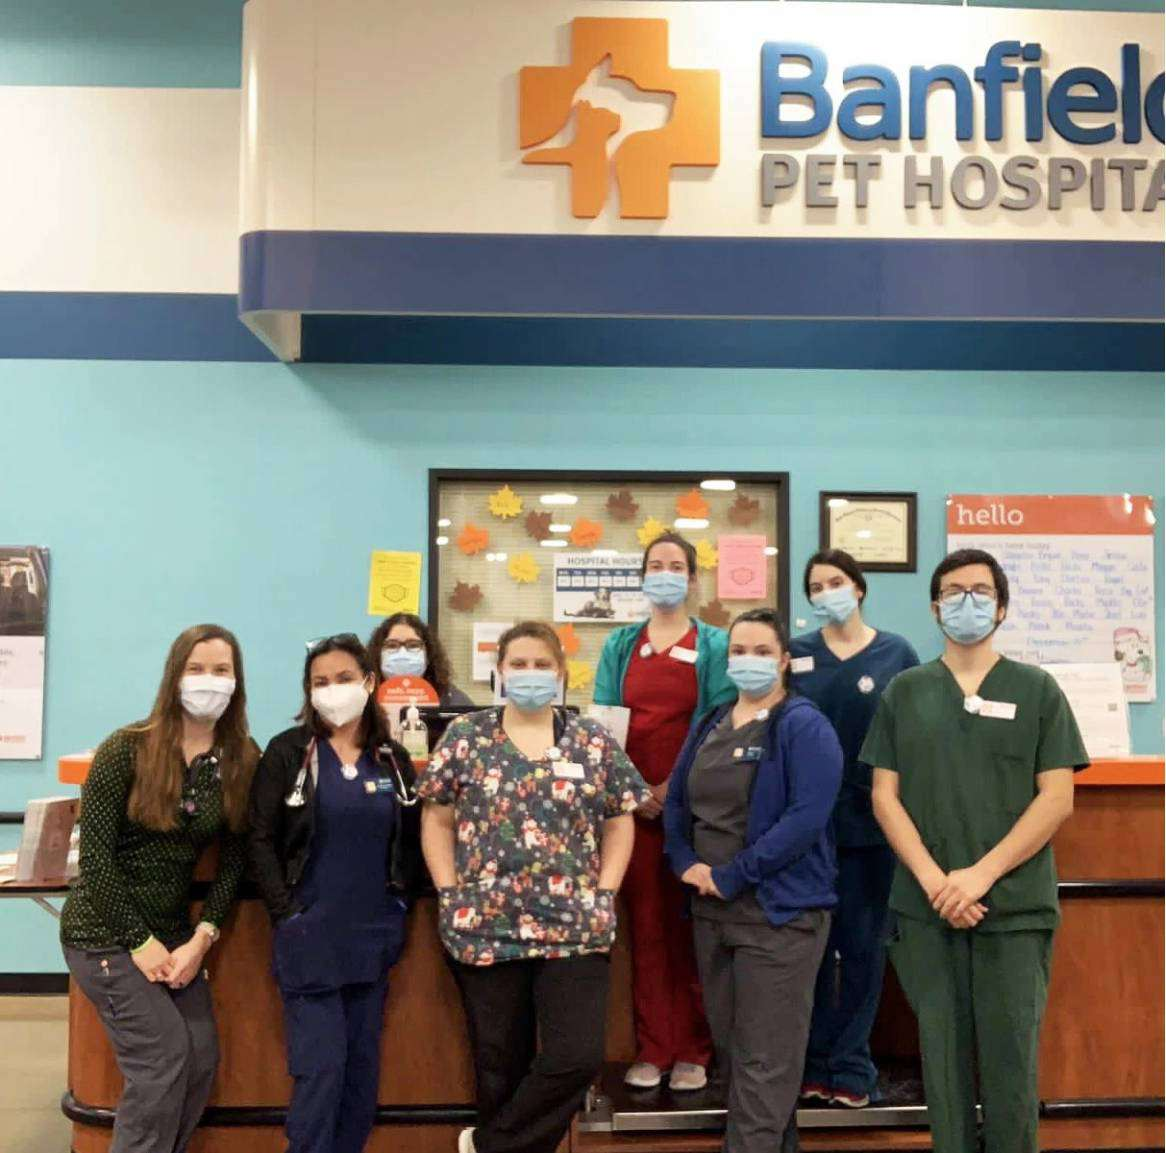 A group of associates at the Banfield Pet Hospital, Wylie, TX